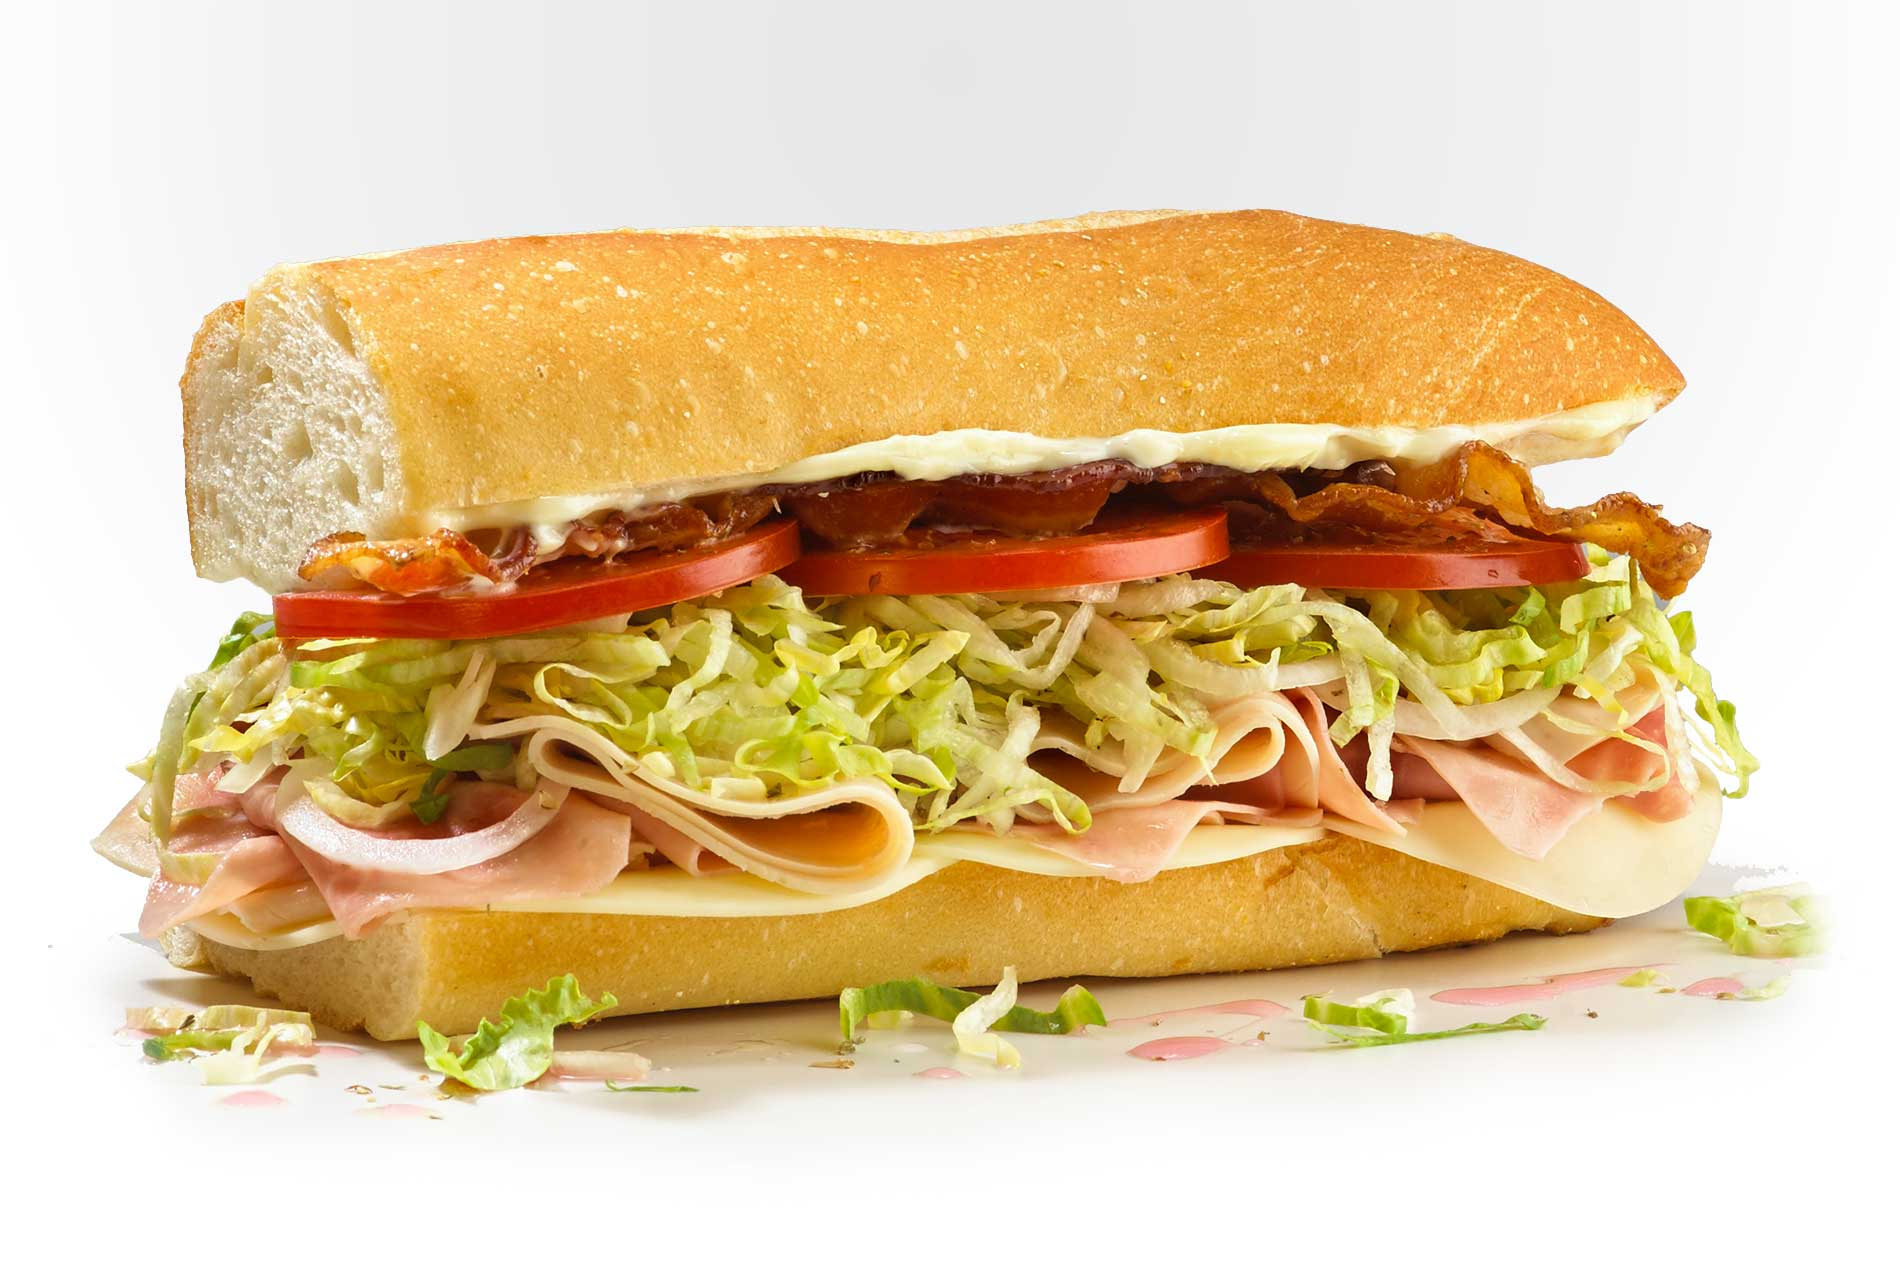 #8 Club Sub - Fresh Sliced Cold Subs